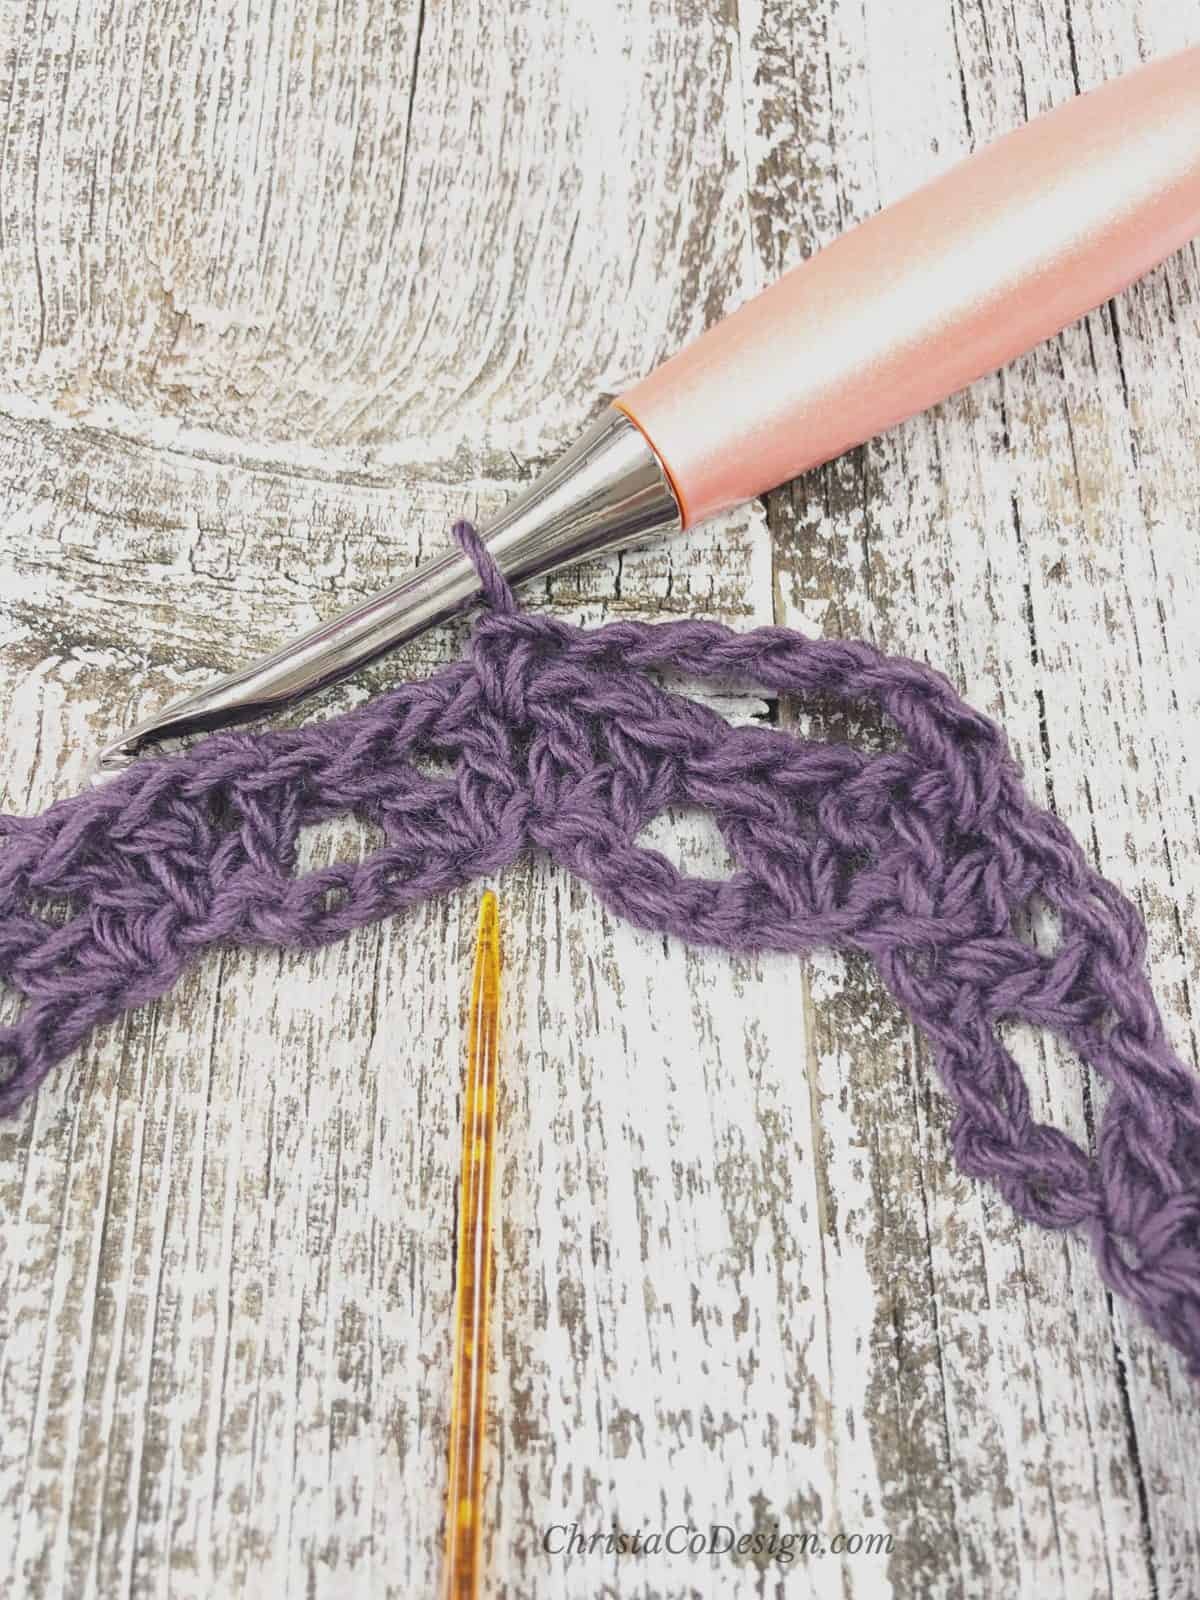 Chain, skip stitches and single crochet for open lace.